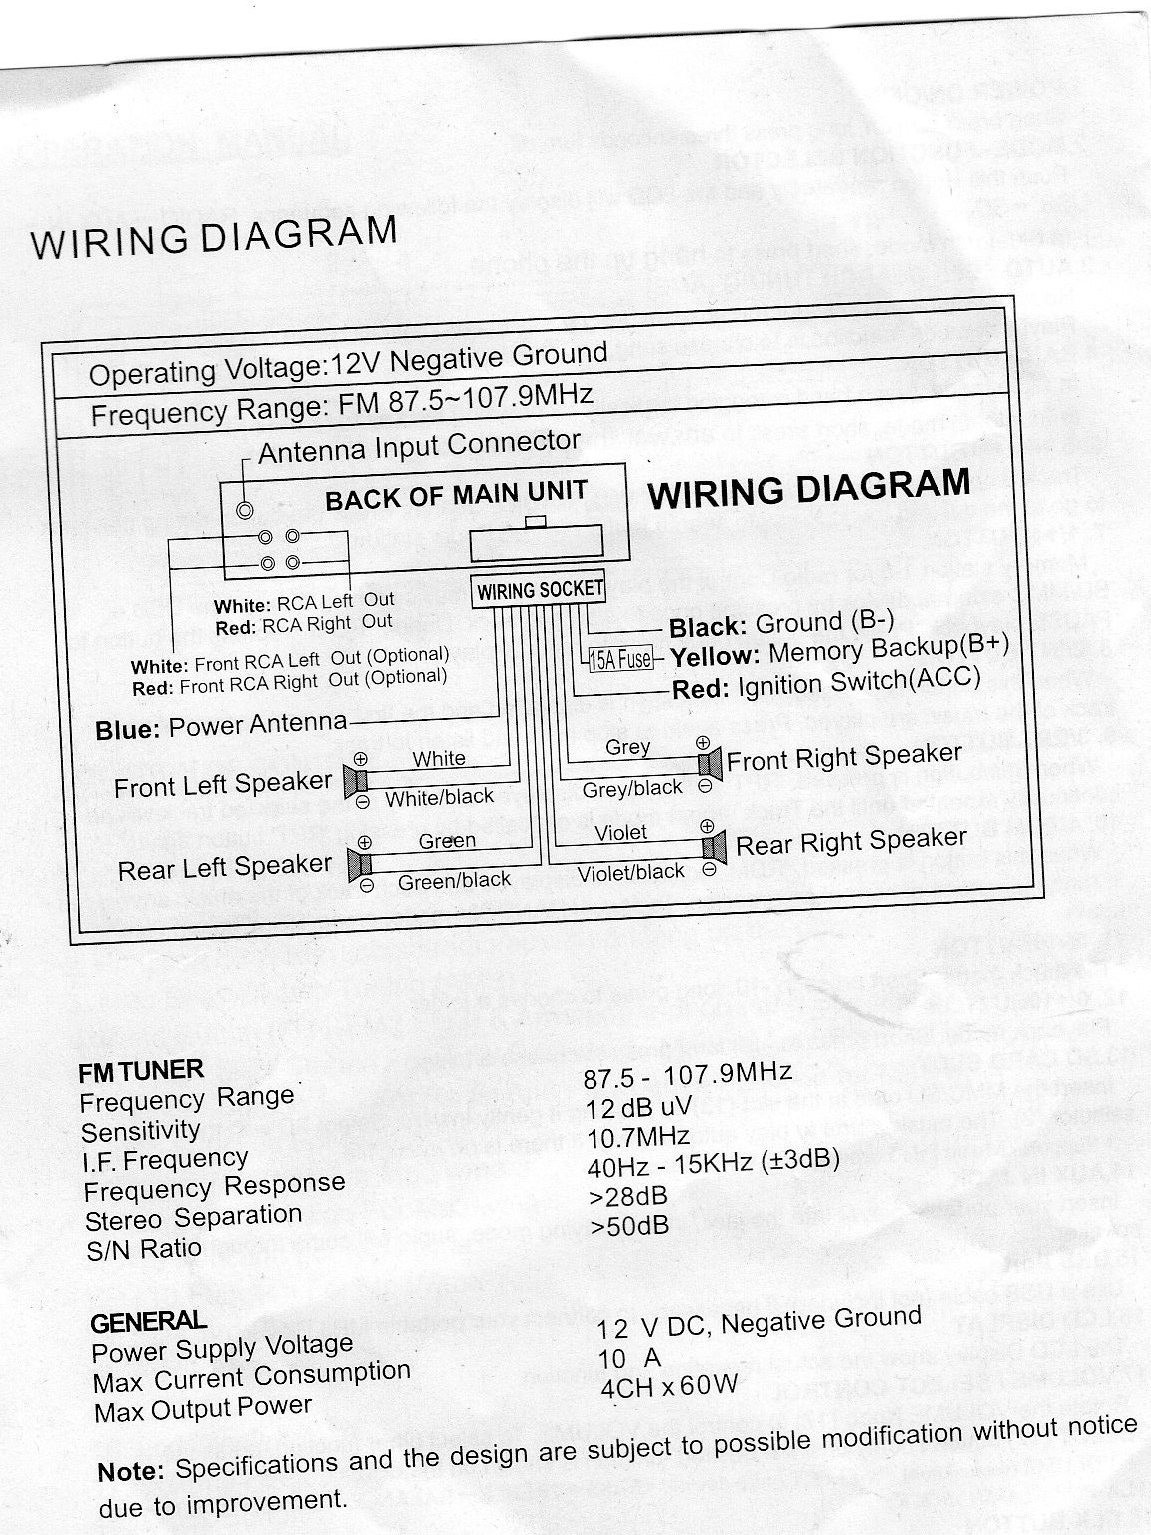 Blaupunkt 520 Wiring Diagram 28 Images Radio Post 48588 0 51466300 1453226005 Again Skoda Favorit Felicia Fun